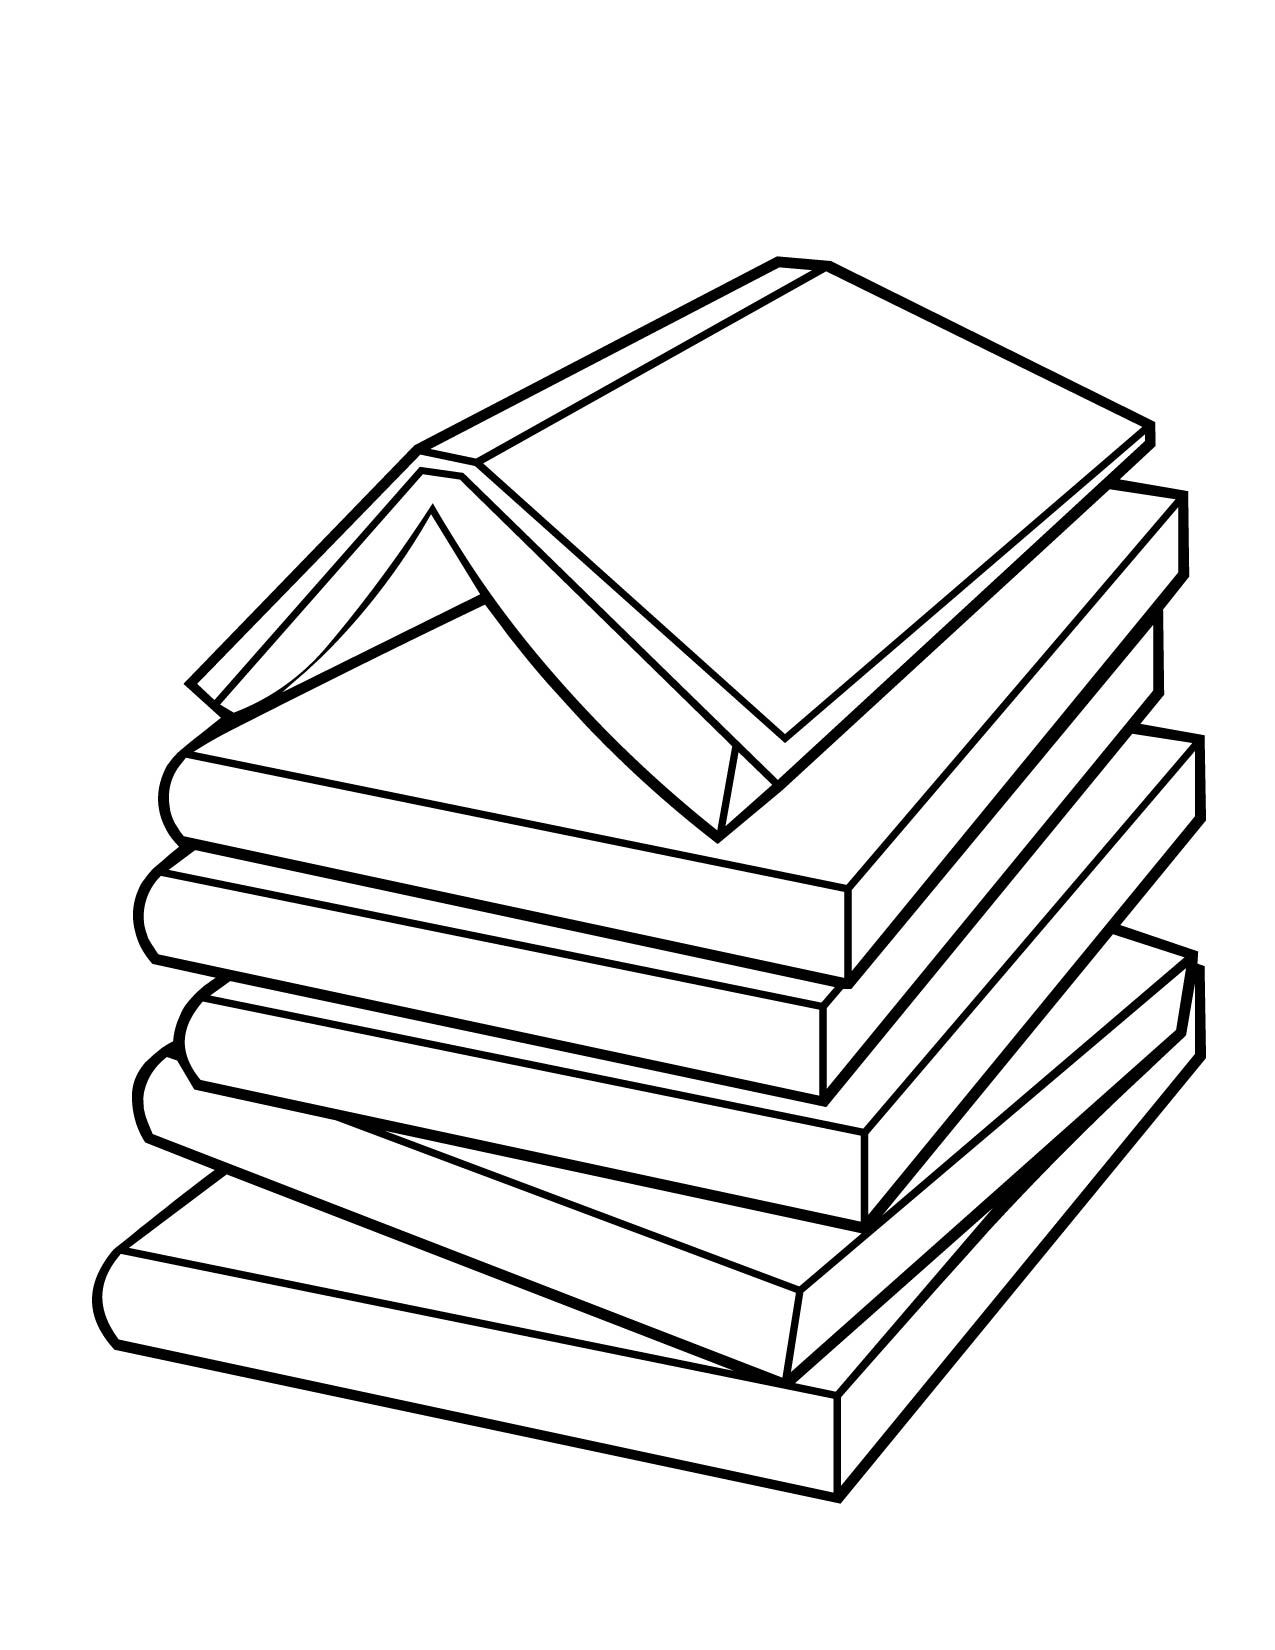 book coloring pages - Free Coloring Book Pictures